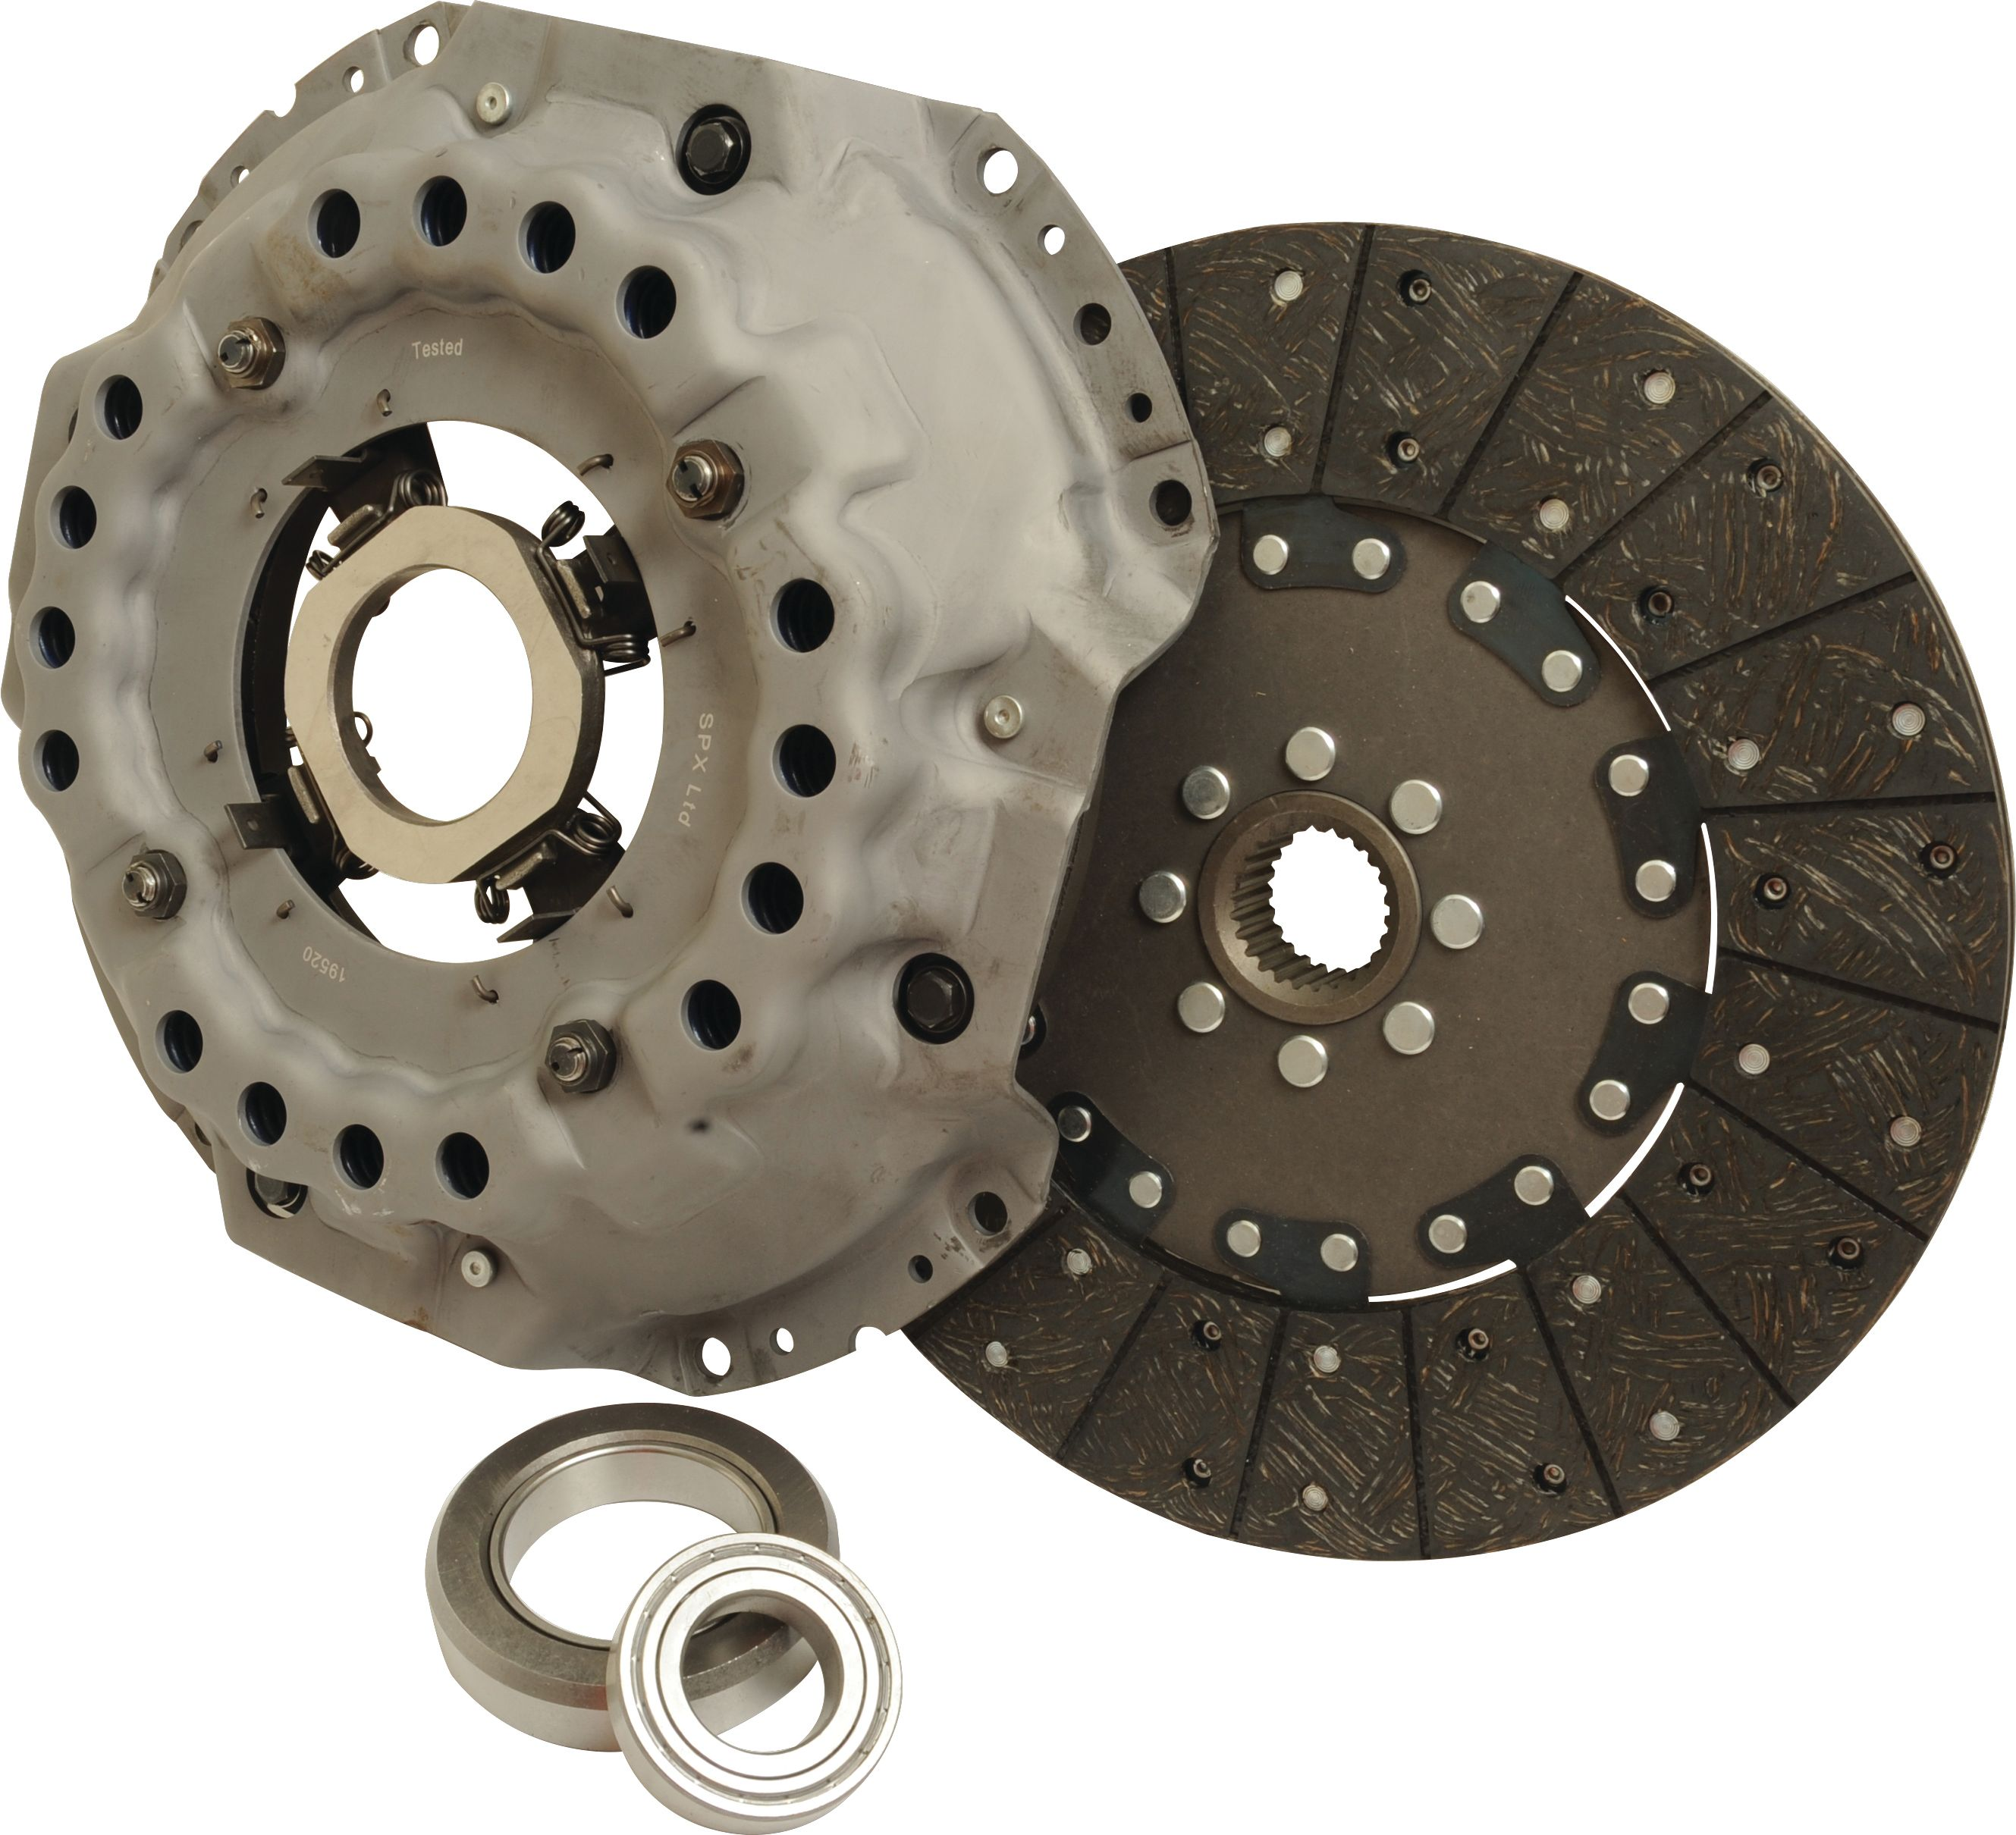 COUNTY CLUTCH KIT WITH BEARINGS 68991